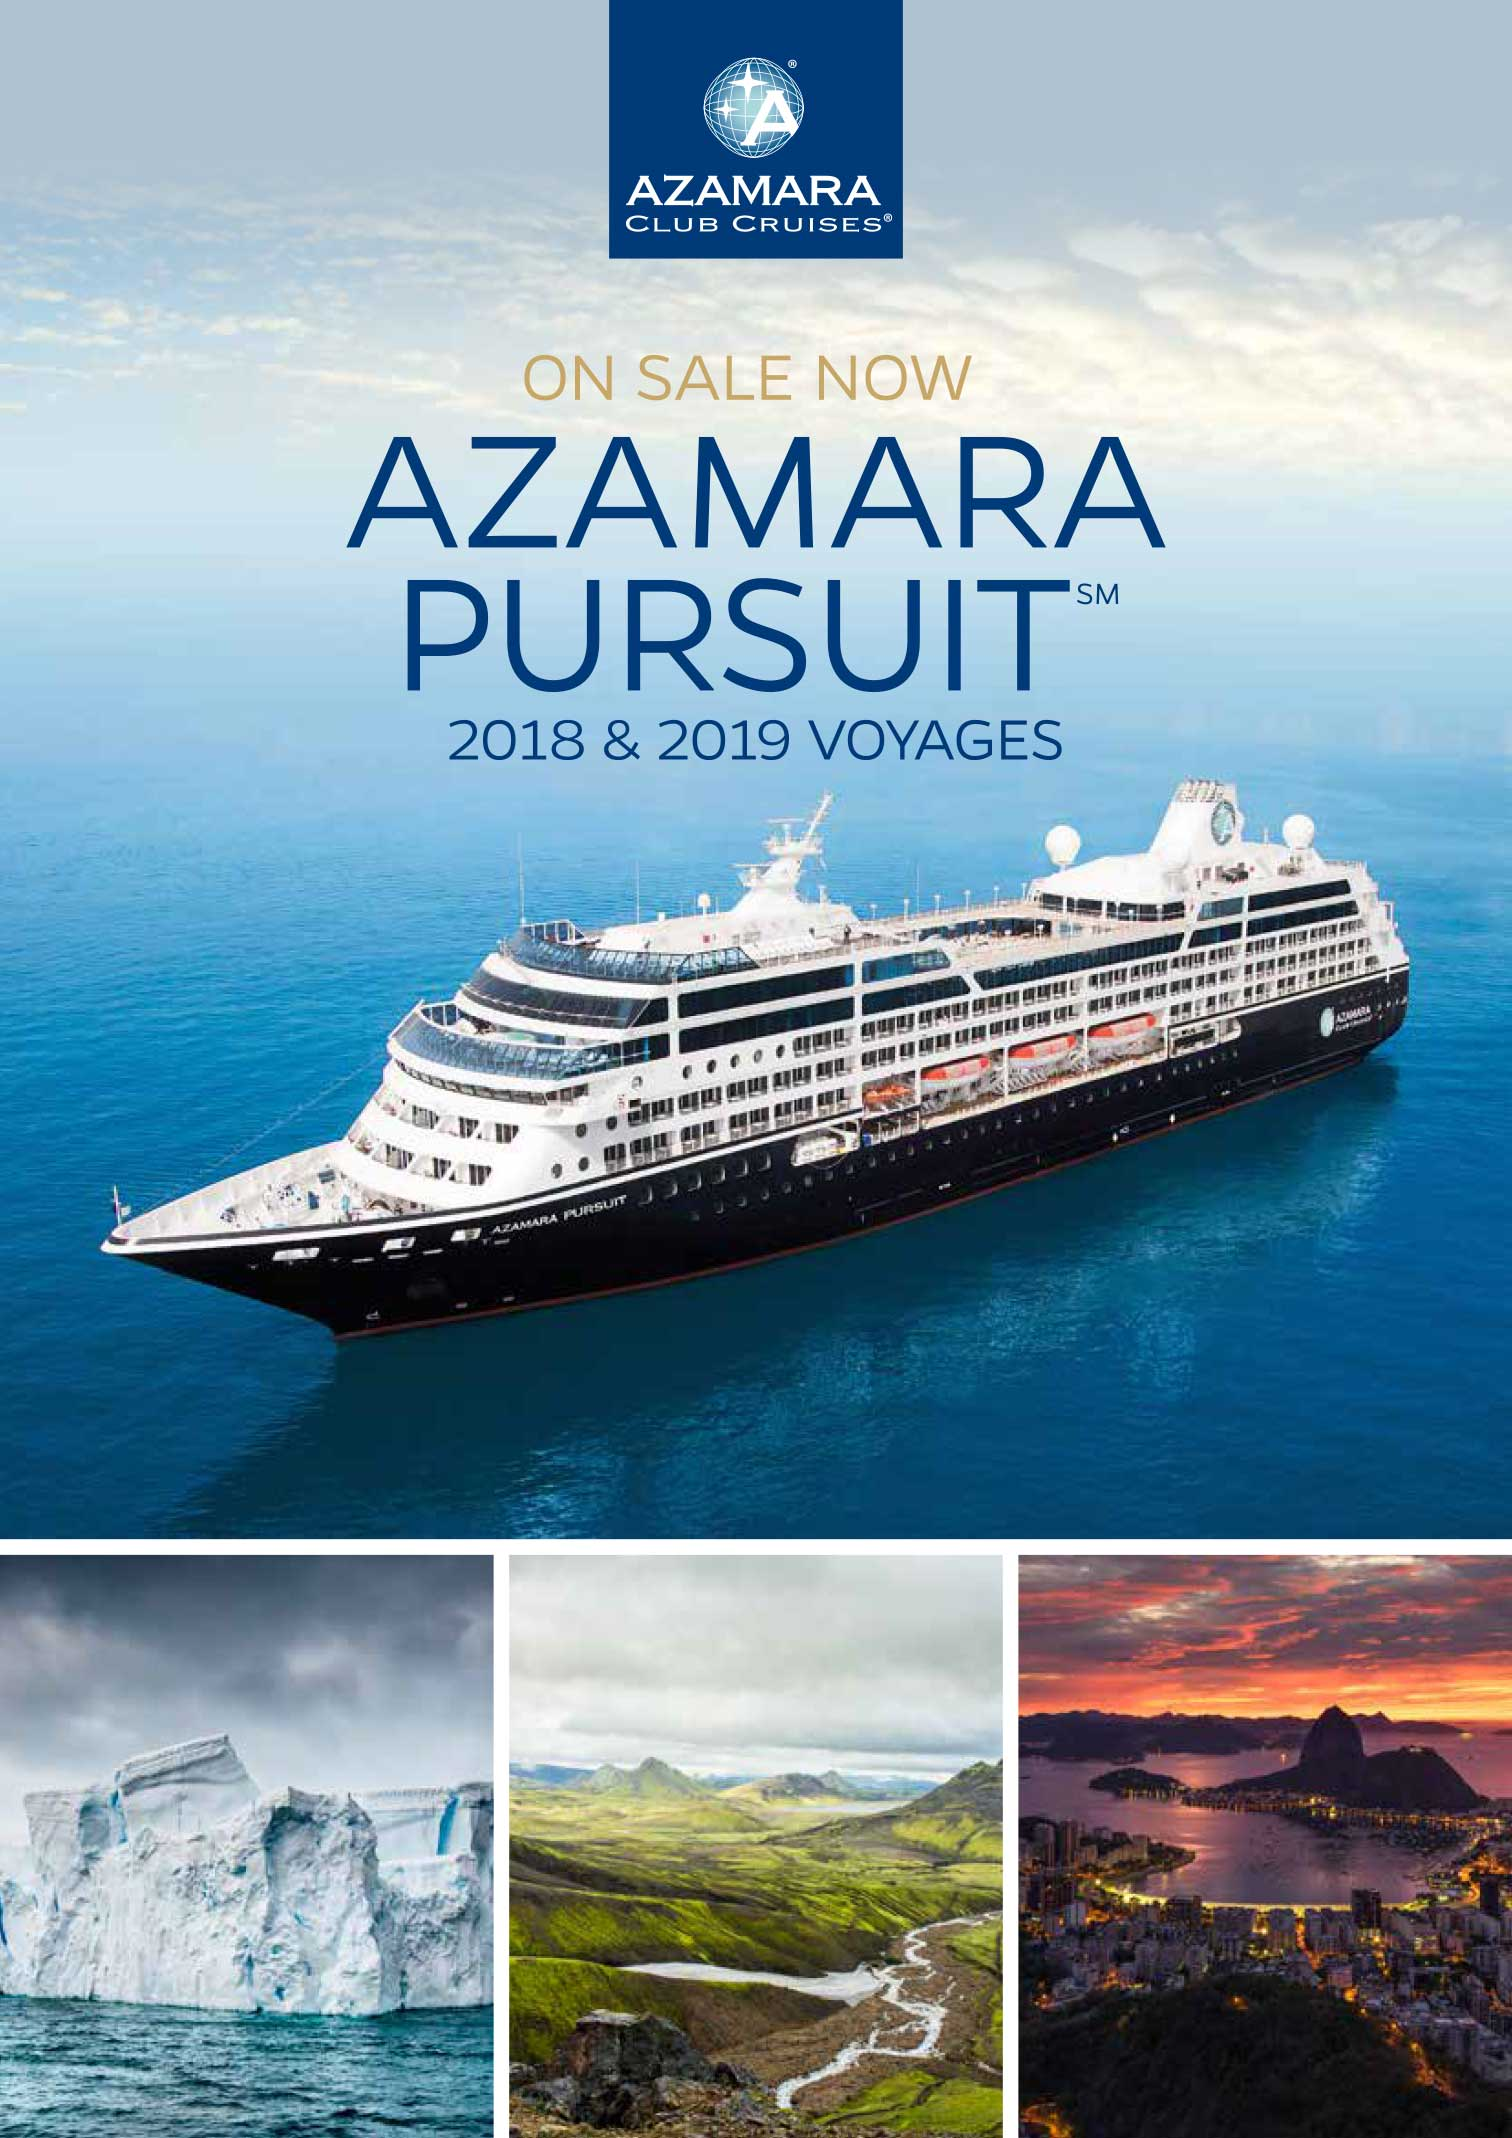 AZAMARA PURSUIT 2018 & 2019 VOYAGES – ON SALE NOW – ZeppelinTravel